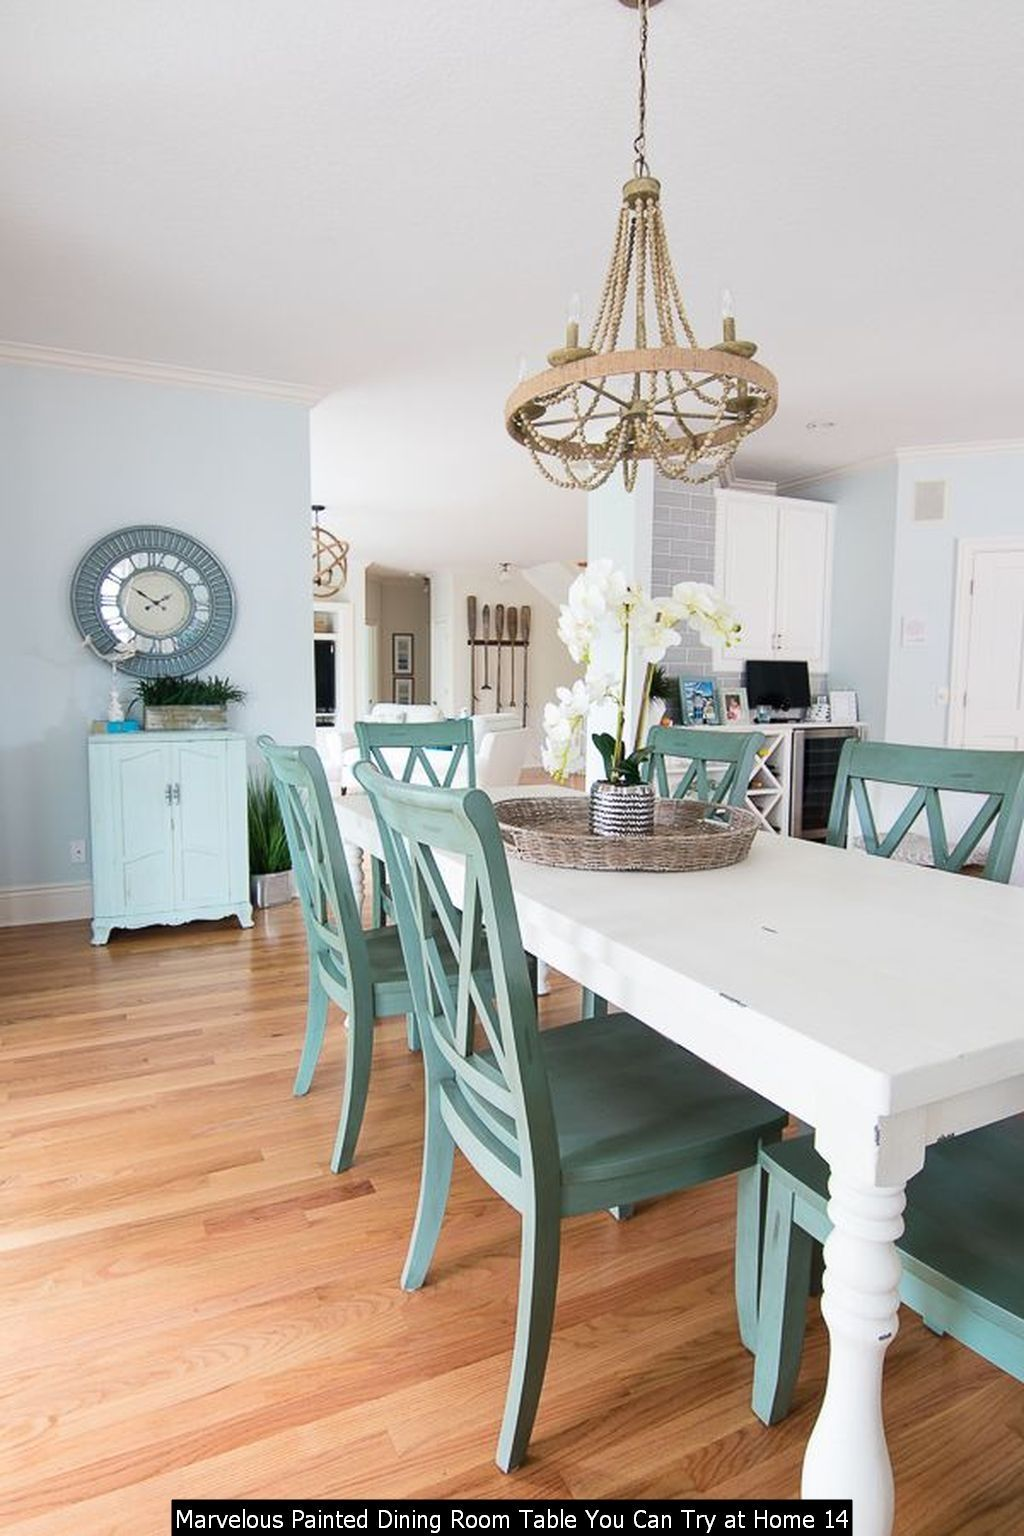 30 Marvelous Painted Dining Room Table You Can Try At Home In 2020 Painted Dining Room Table Coastal Dining Room Dining Room Table